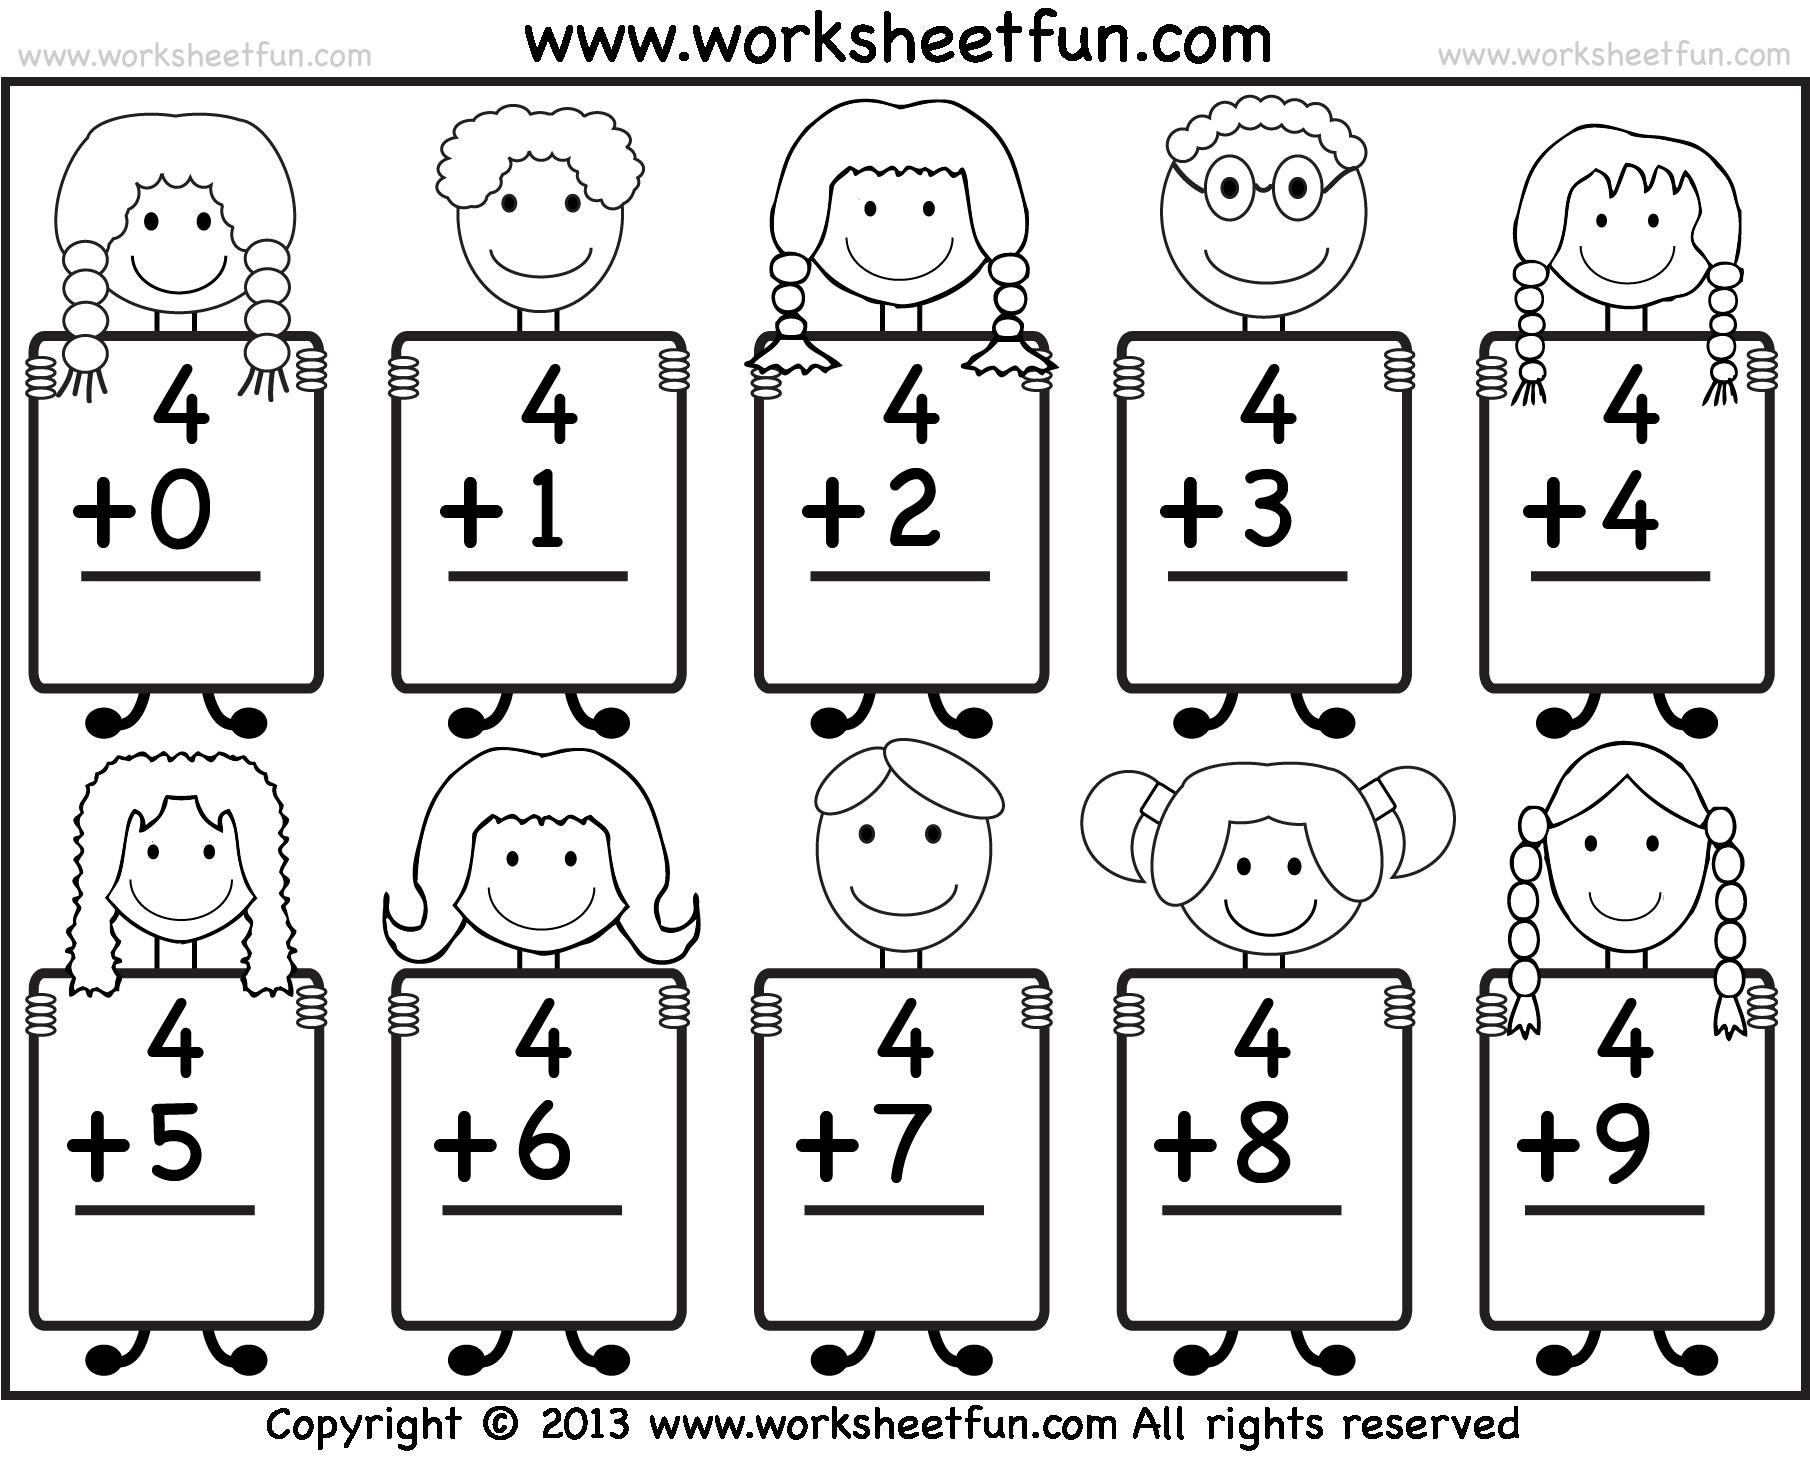 freeprintablemathworksheetsforkindergartenaddition1png – Addition Kindergarten Worksheet